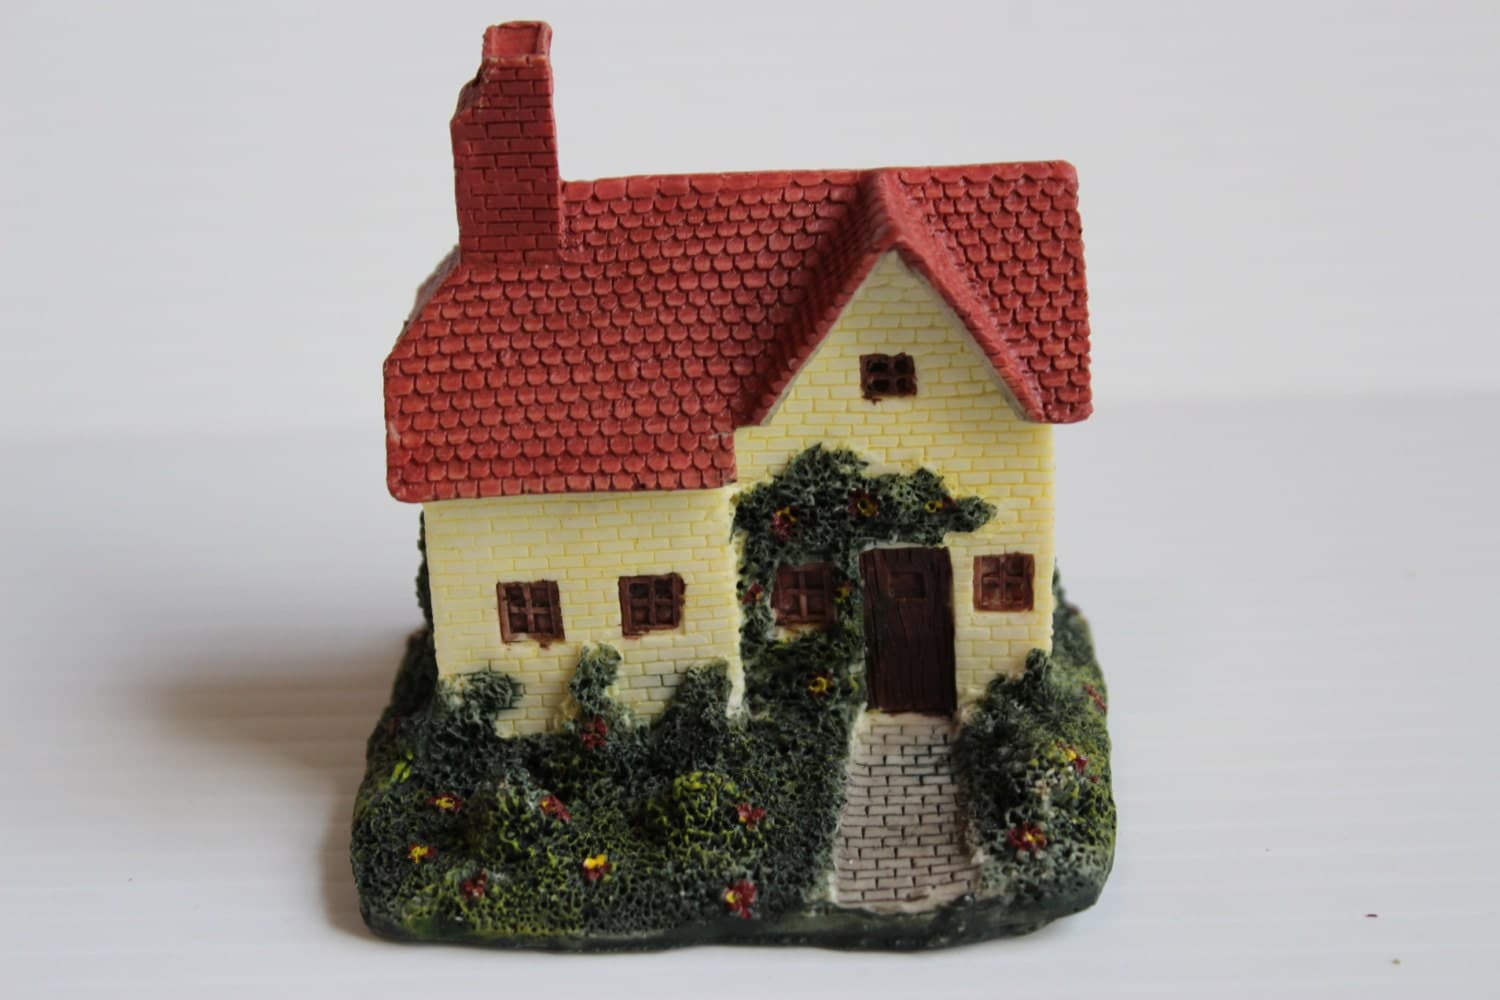 Cornwall cottage collection vintage home decor vintage gift - Vintage home decorating collection ...